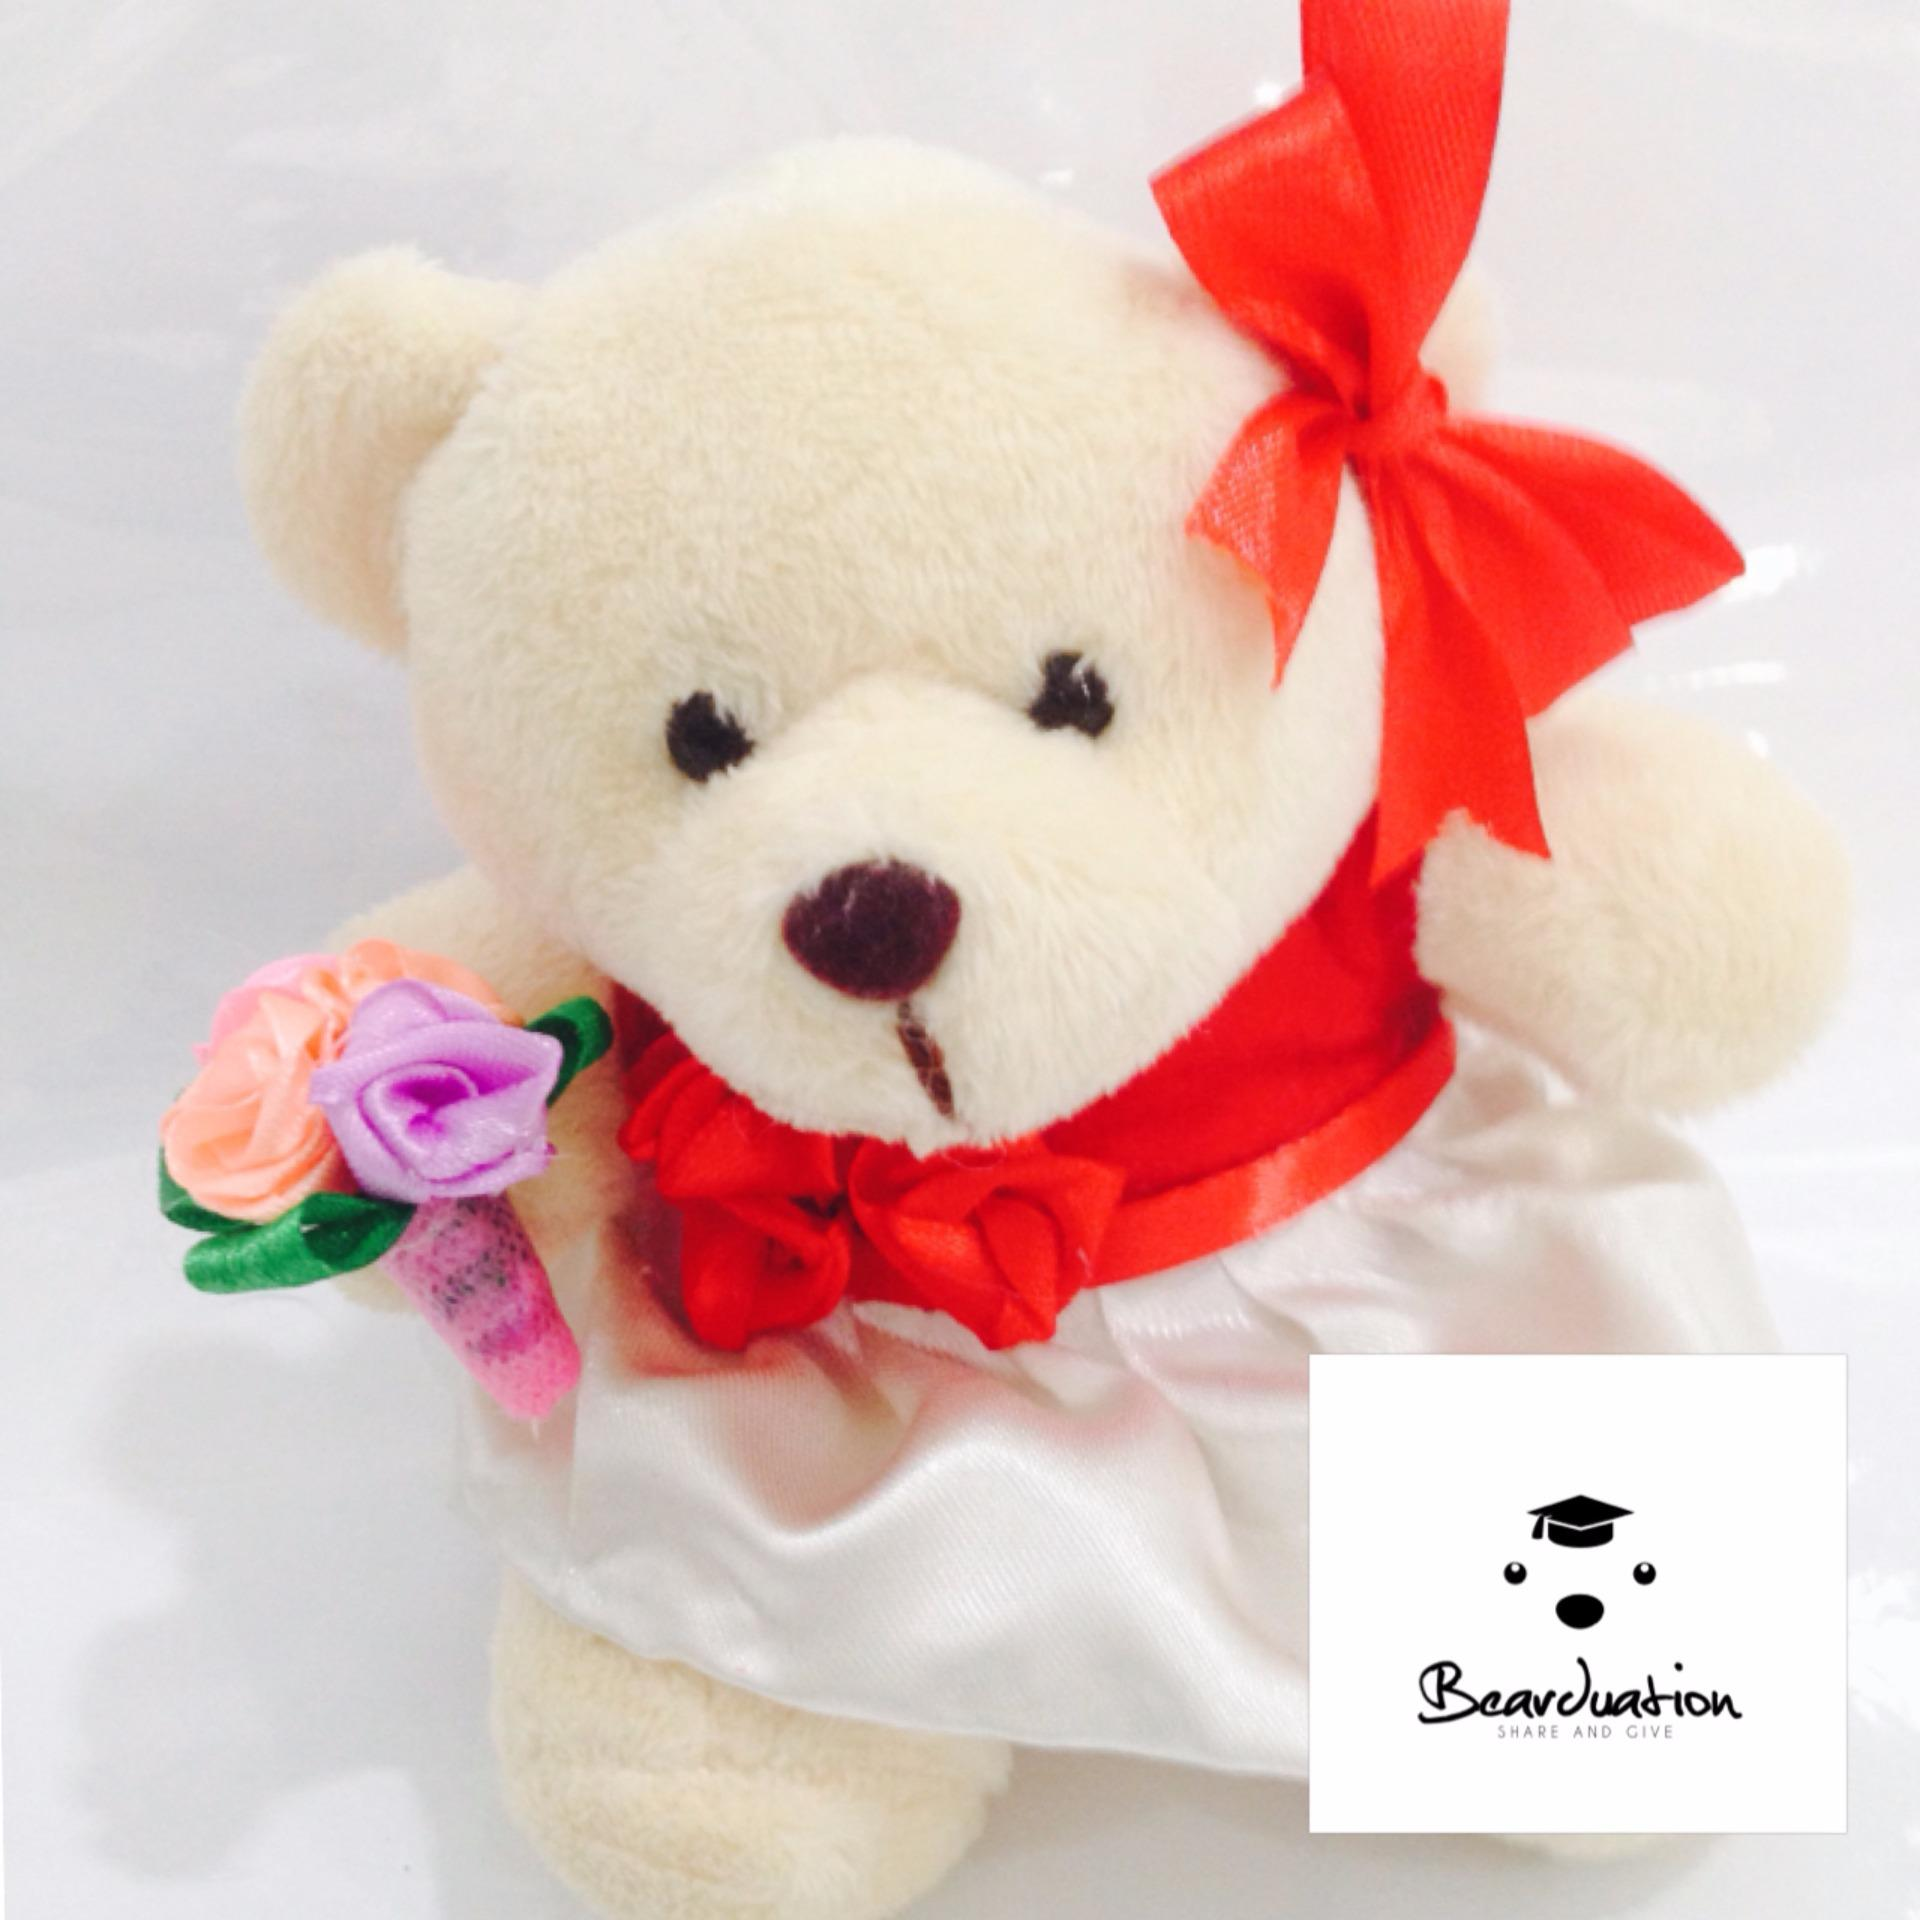 Bearduation Wedding Doll ...